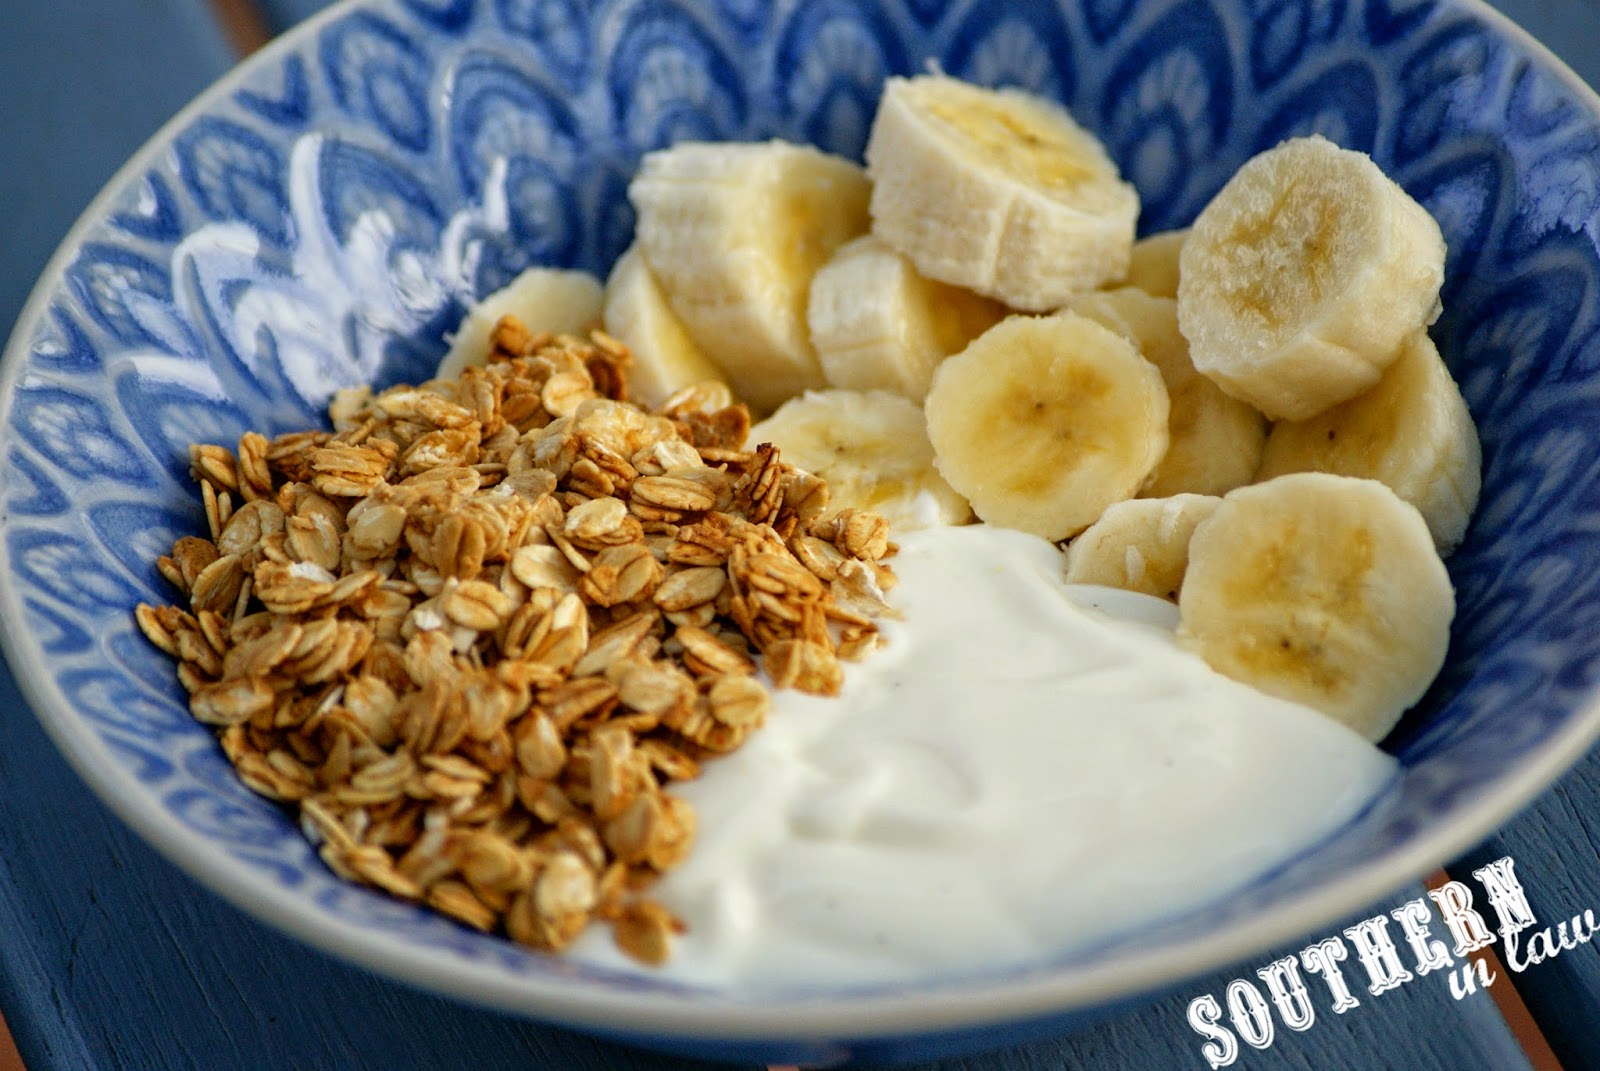 Southern in law recipe healthy homemade honey vanilla granola monday september 15 2014 ccuart Choice Image